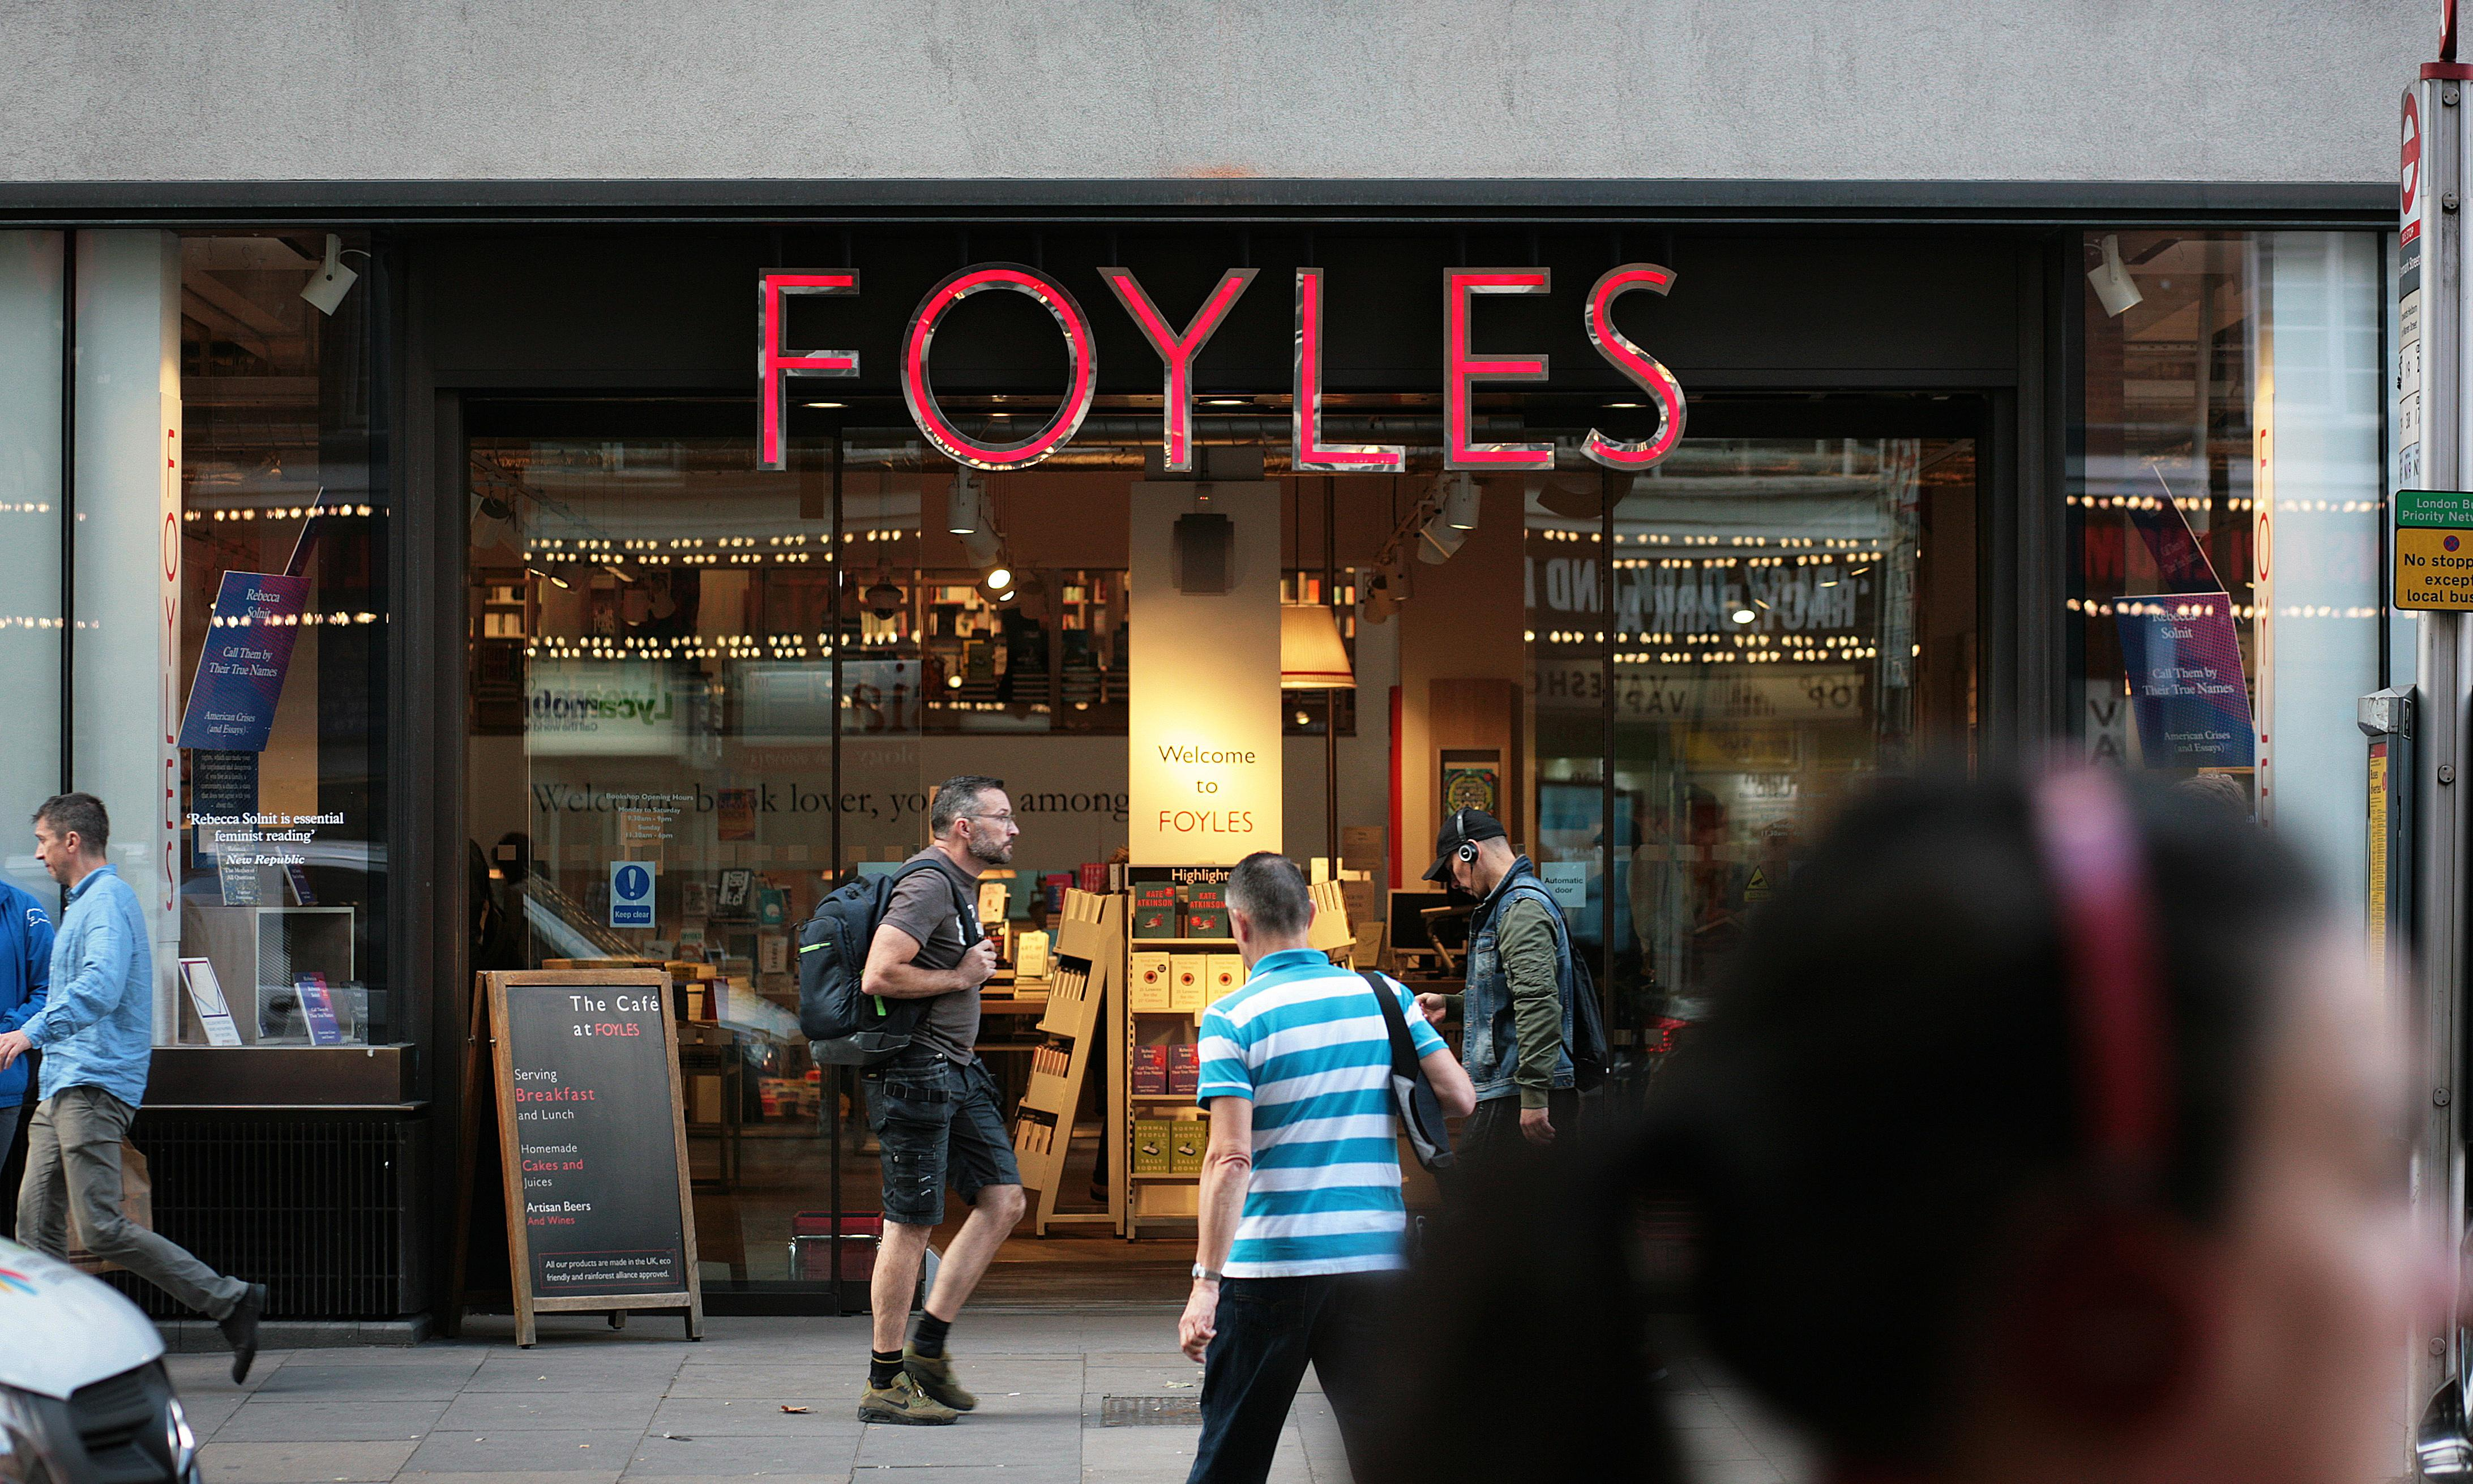 Foyles sets up libraries for high-end retirement homes